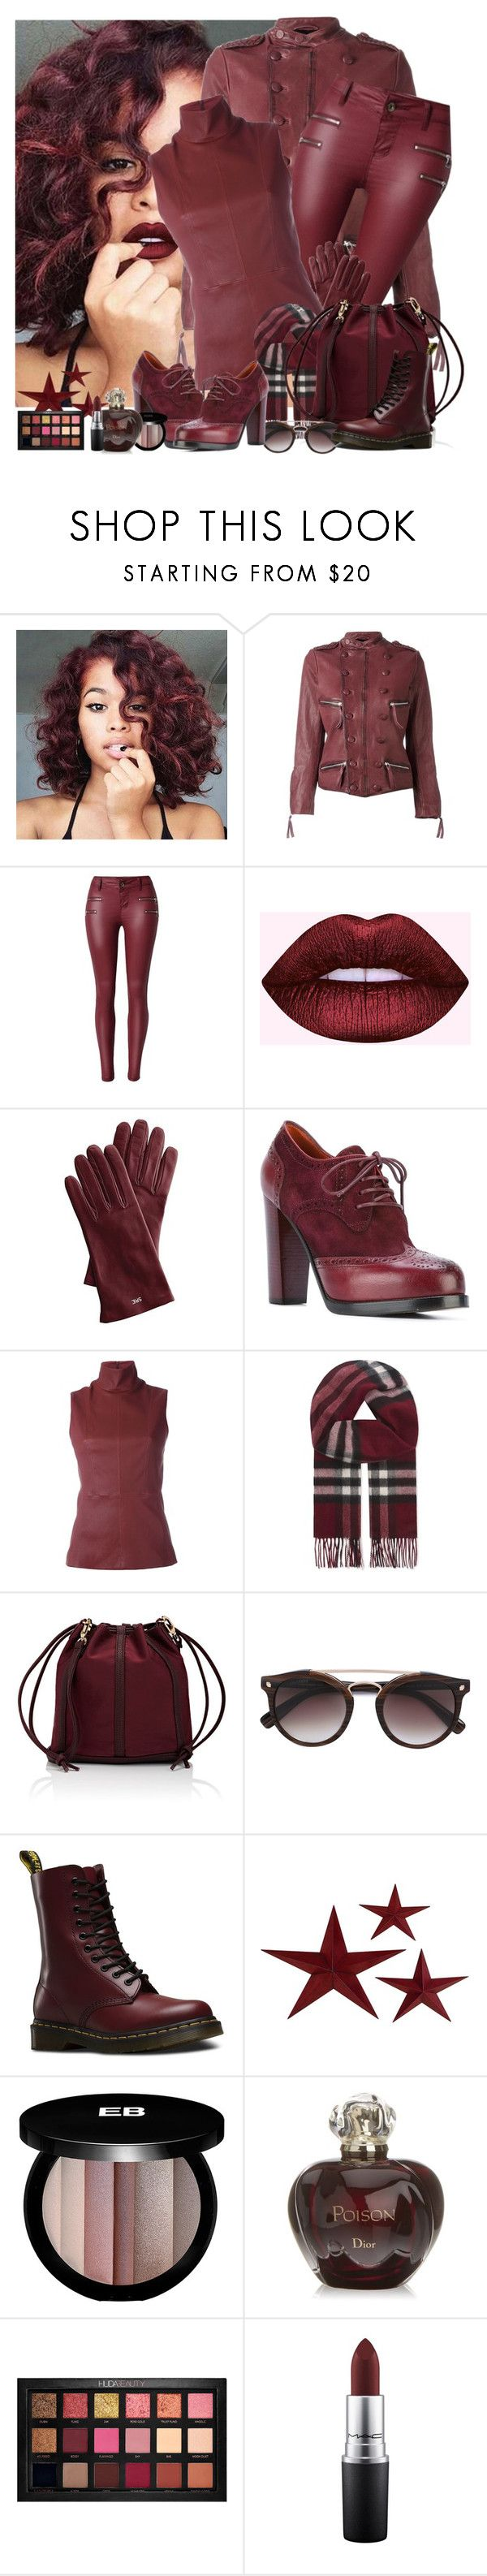 """hello world :)"" by zanet ❤ liked on Polyvore featuring Faith Connexion, Mark & Graham, Santoni, Thierry Mugler, Burberry, Deux Lux, Dsquared2, Dr. Martens, Edward Bess and Christian Dior"